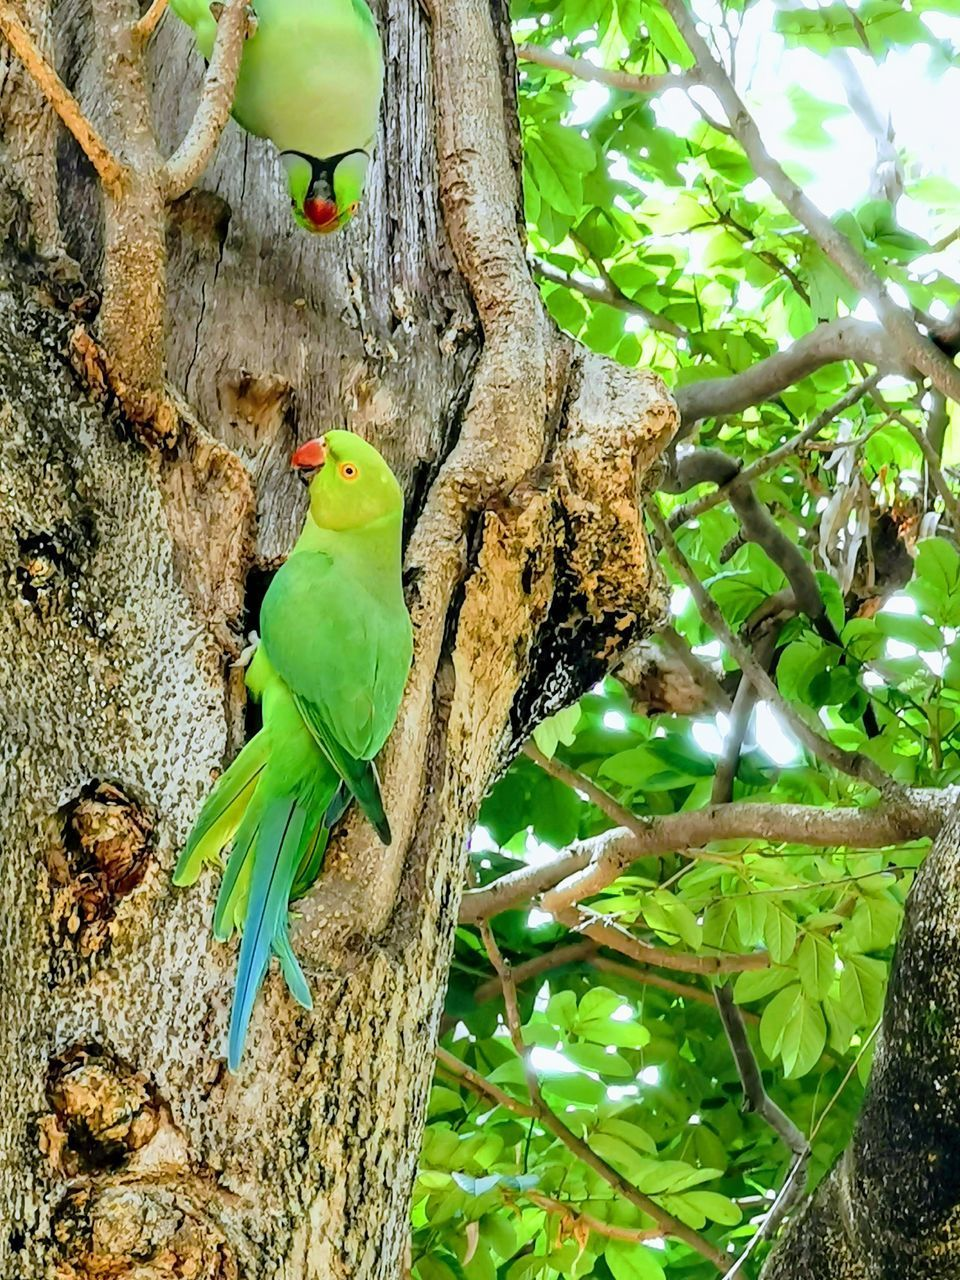 VIEW OF PARROT PERCHING ON TREE TRUNK